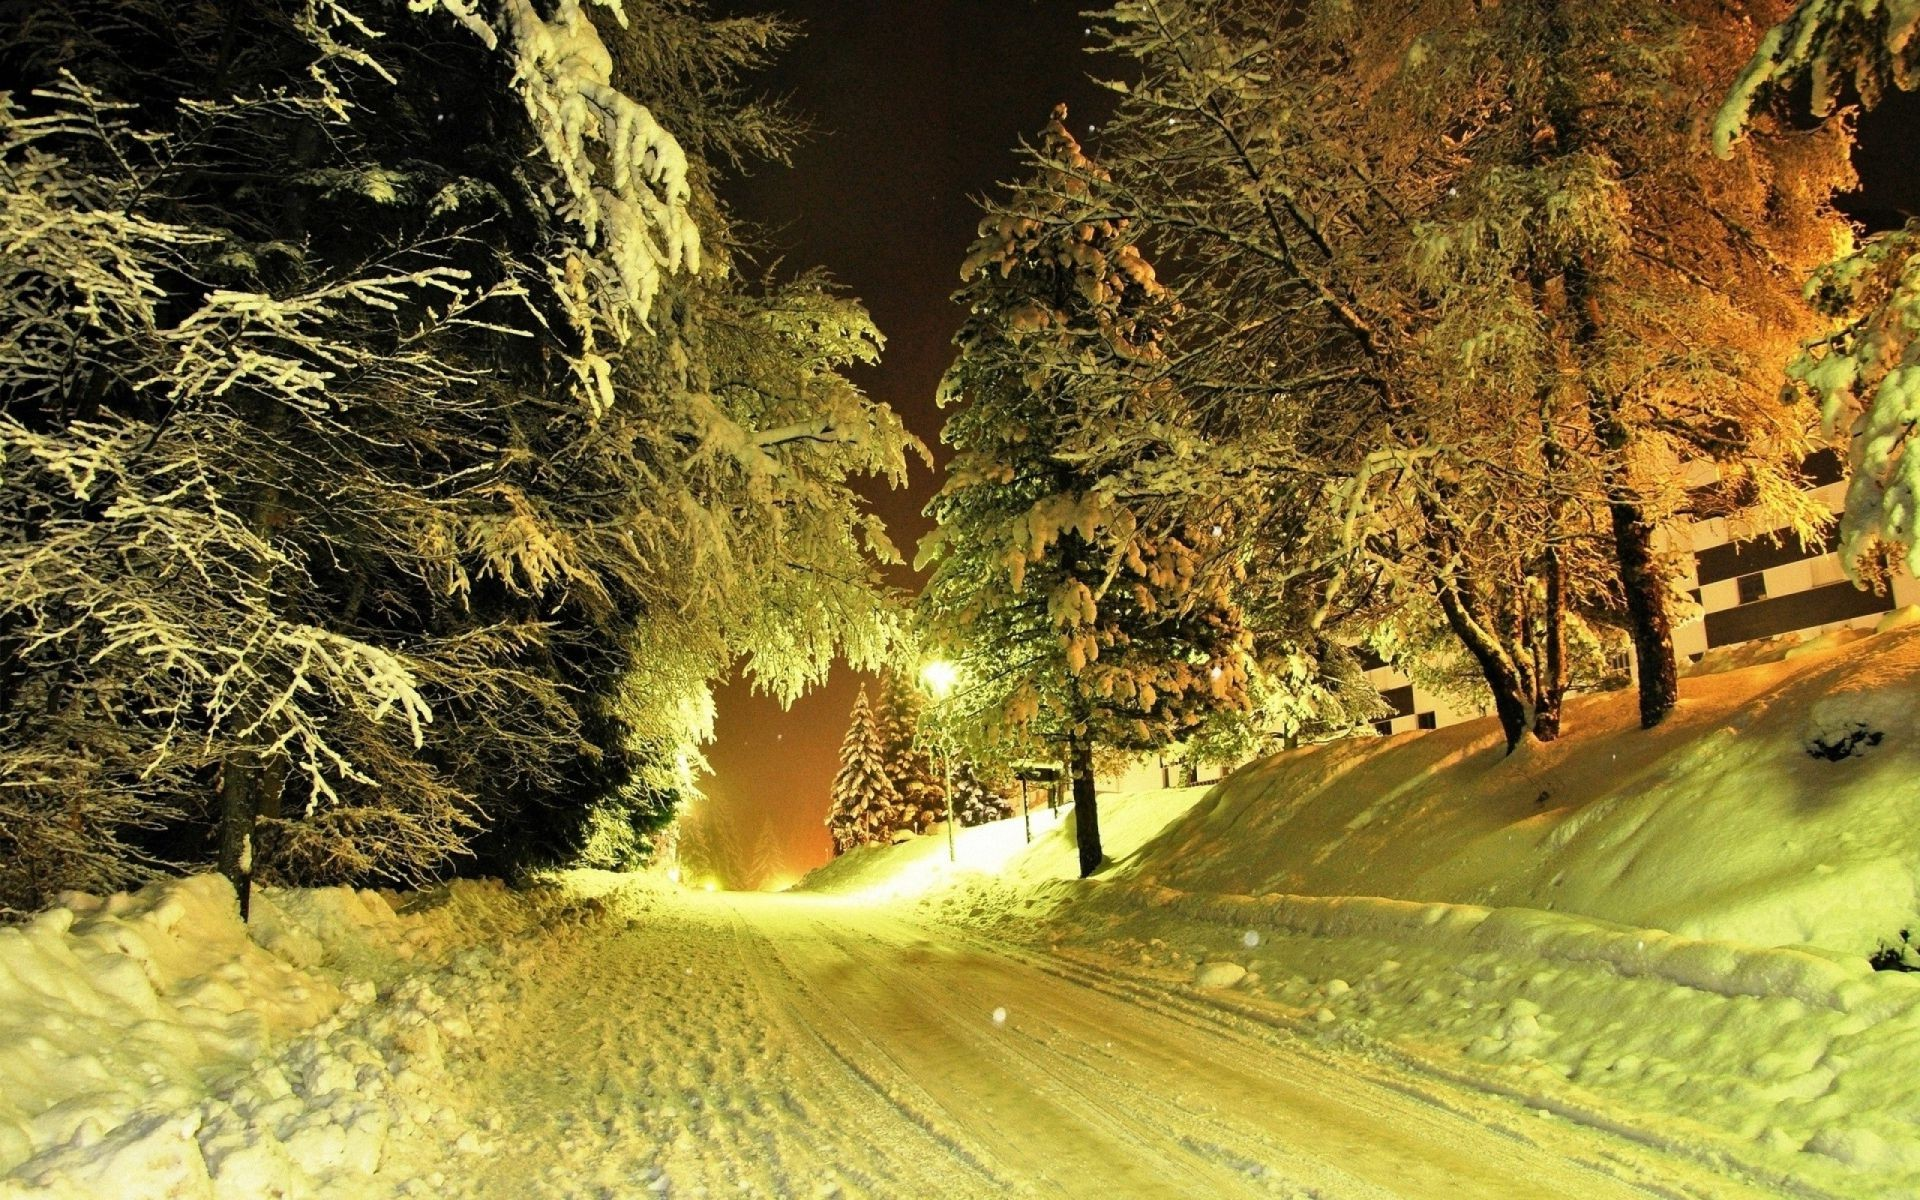 winter nature tree light travel wood outdoors landscape leaf road fall